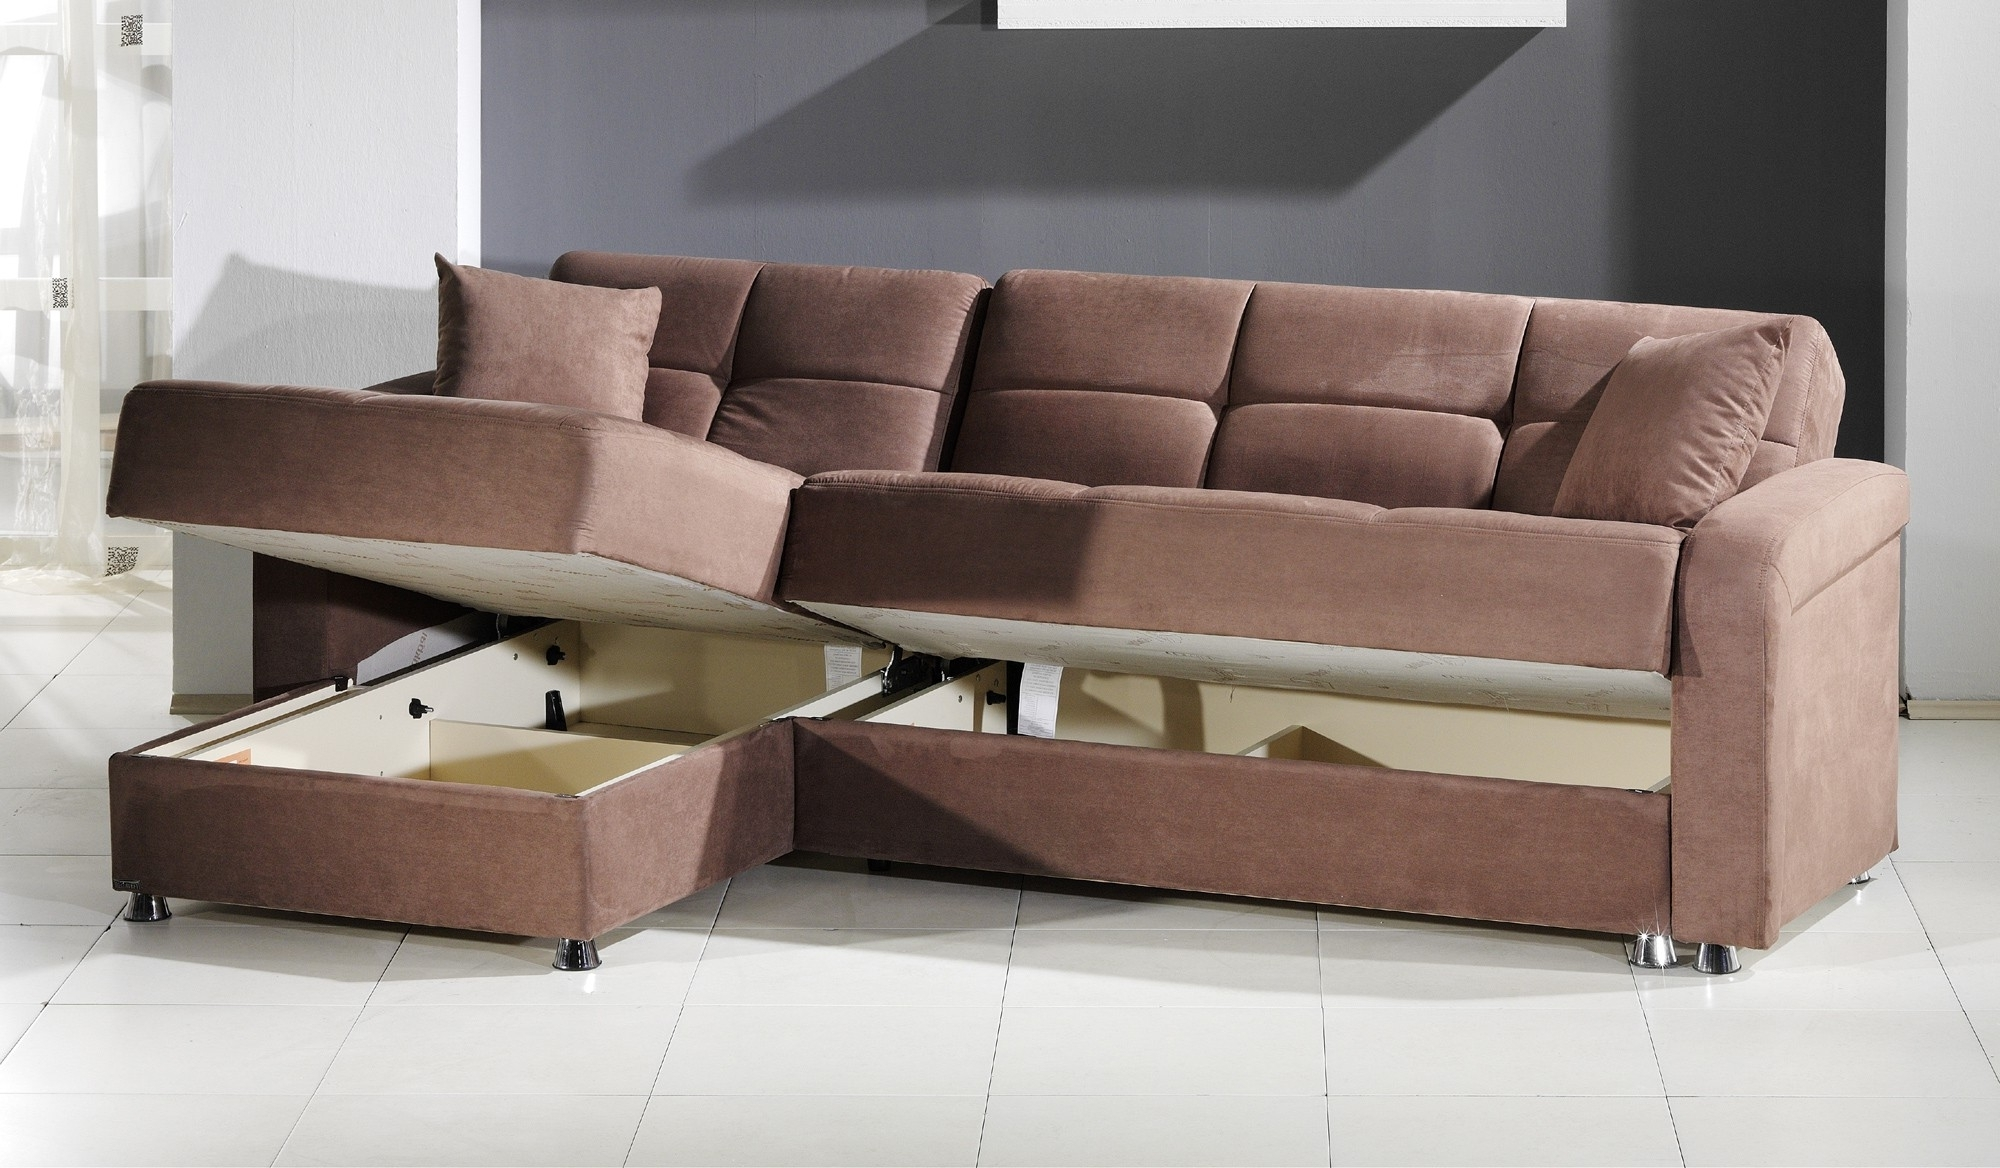 Latest Furniture & Sofa: Glamorous Interior Furniture Designhavertys Within Greenville Nc Sectional Sofas (View 17 of 20)